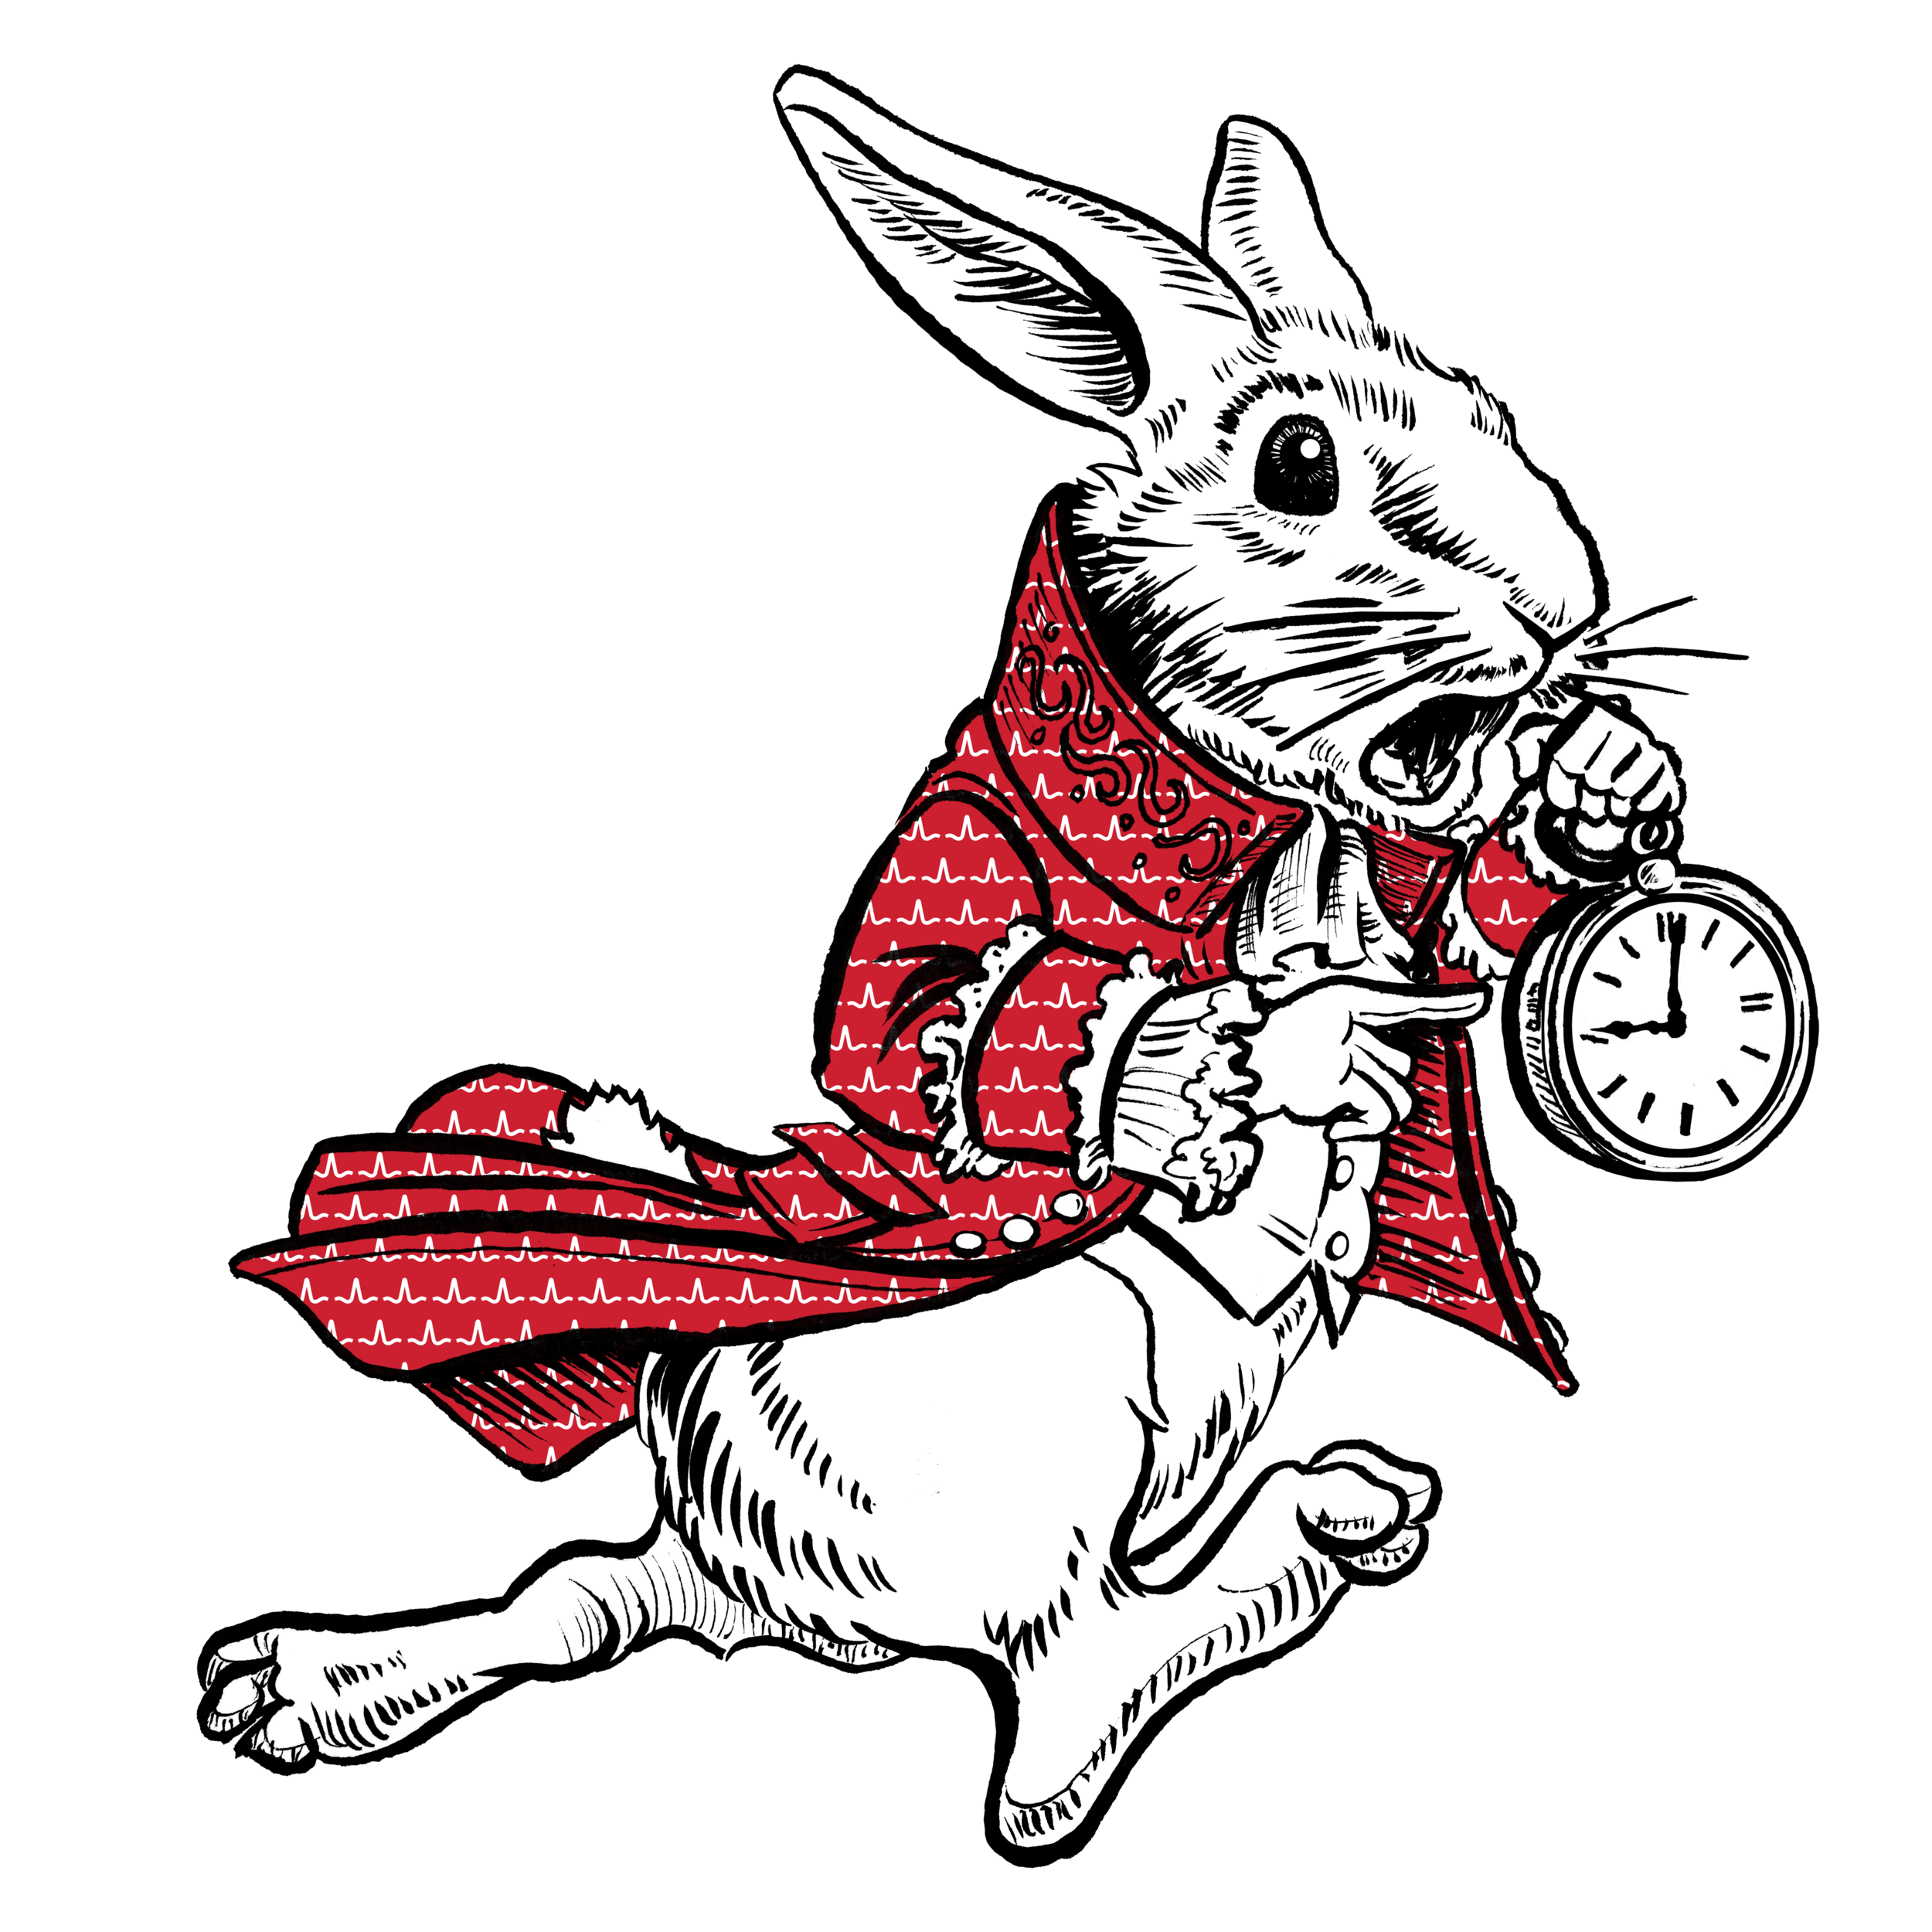 bunny-illustration-BC-ABM_v2.png